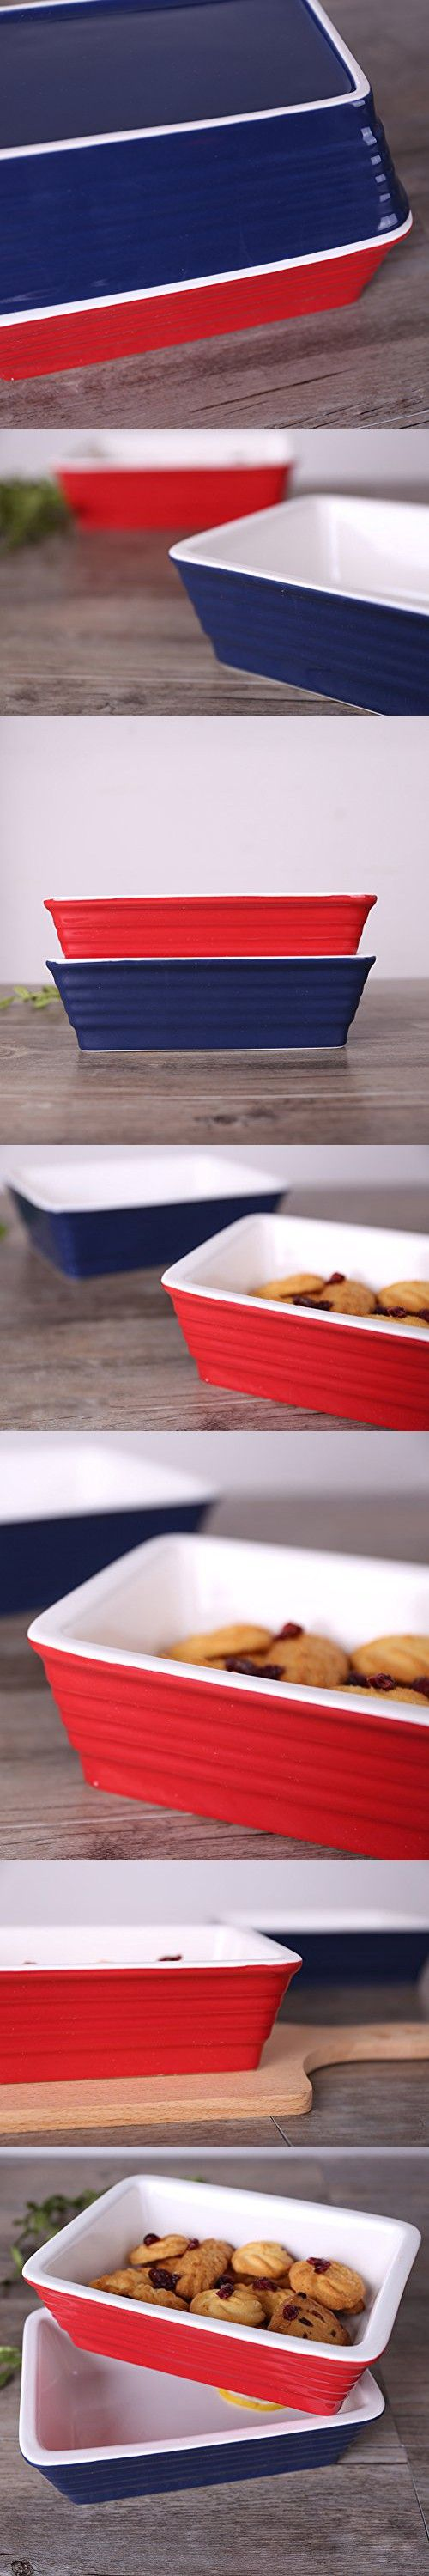 """Chef's Classic Enameled Roasting and Lasagna Pan, 650ml, 7.6"""" (Blue)"""